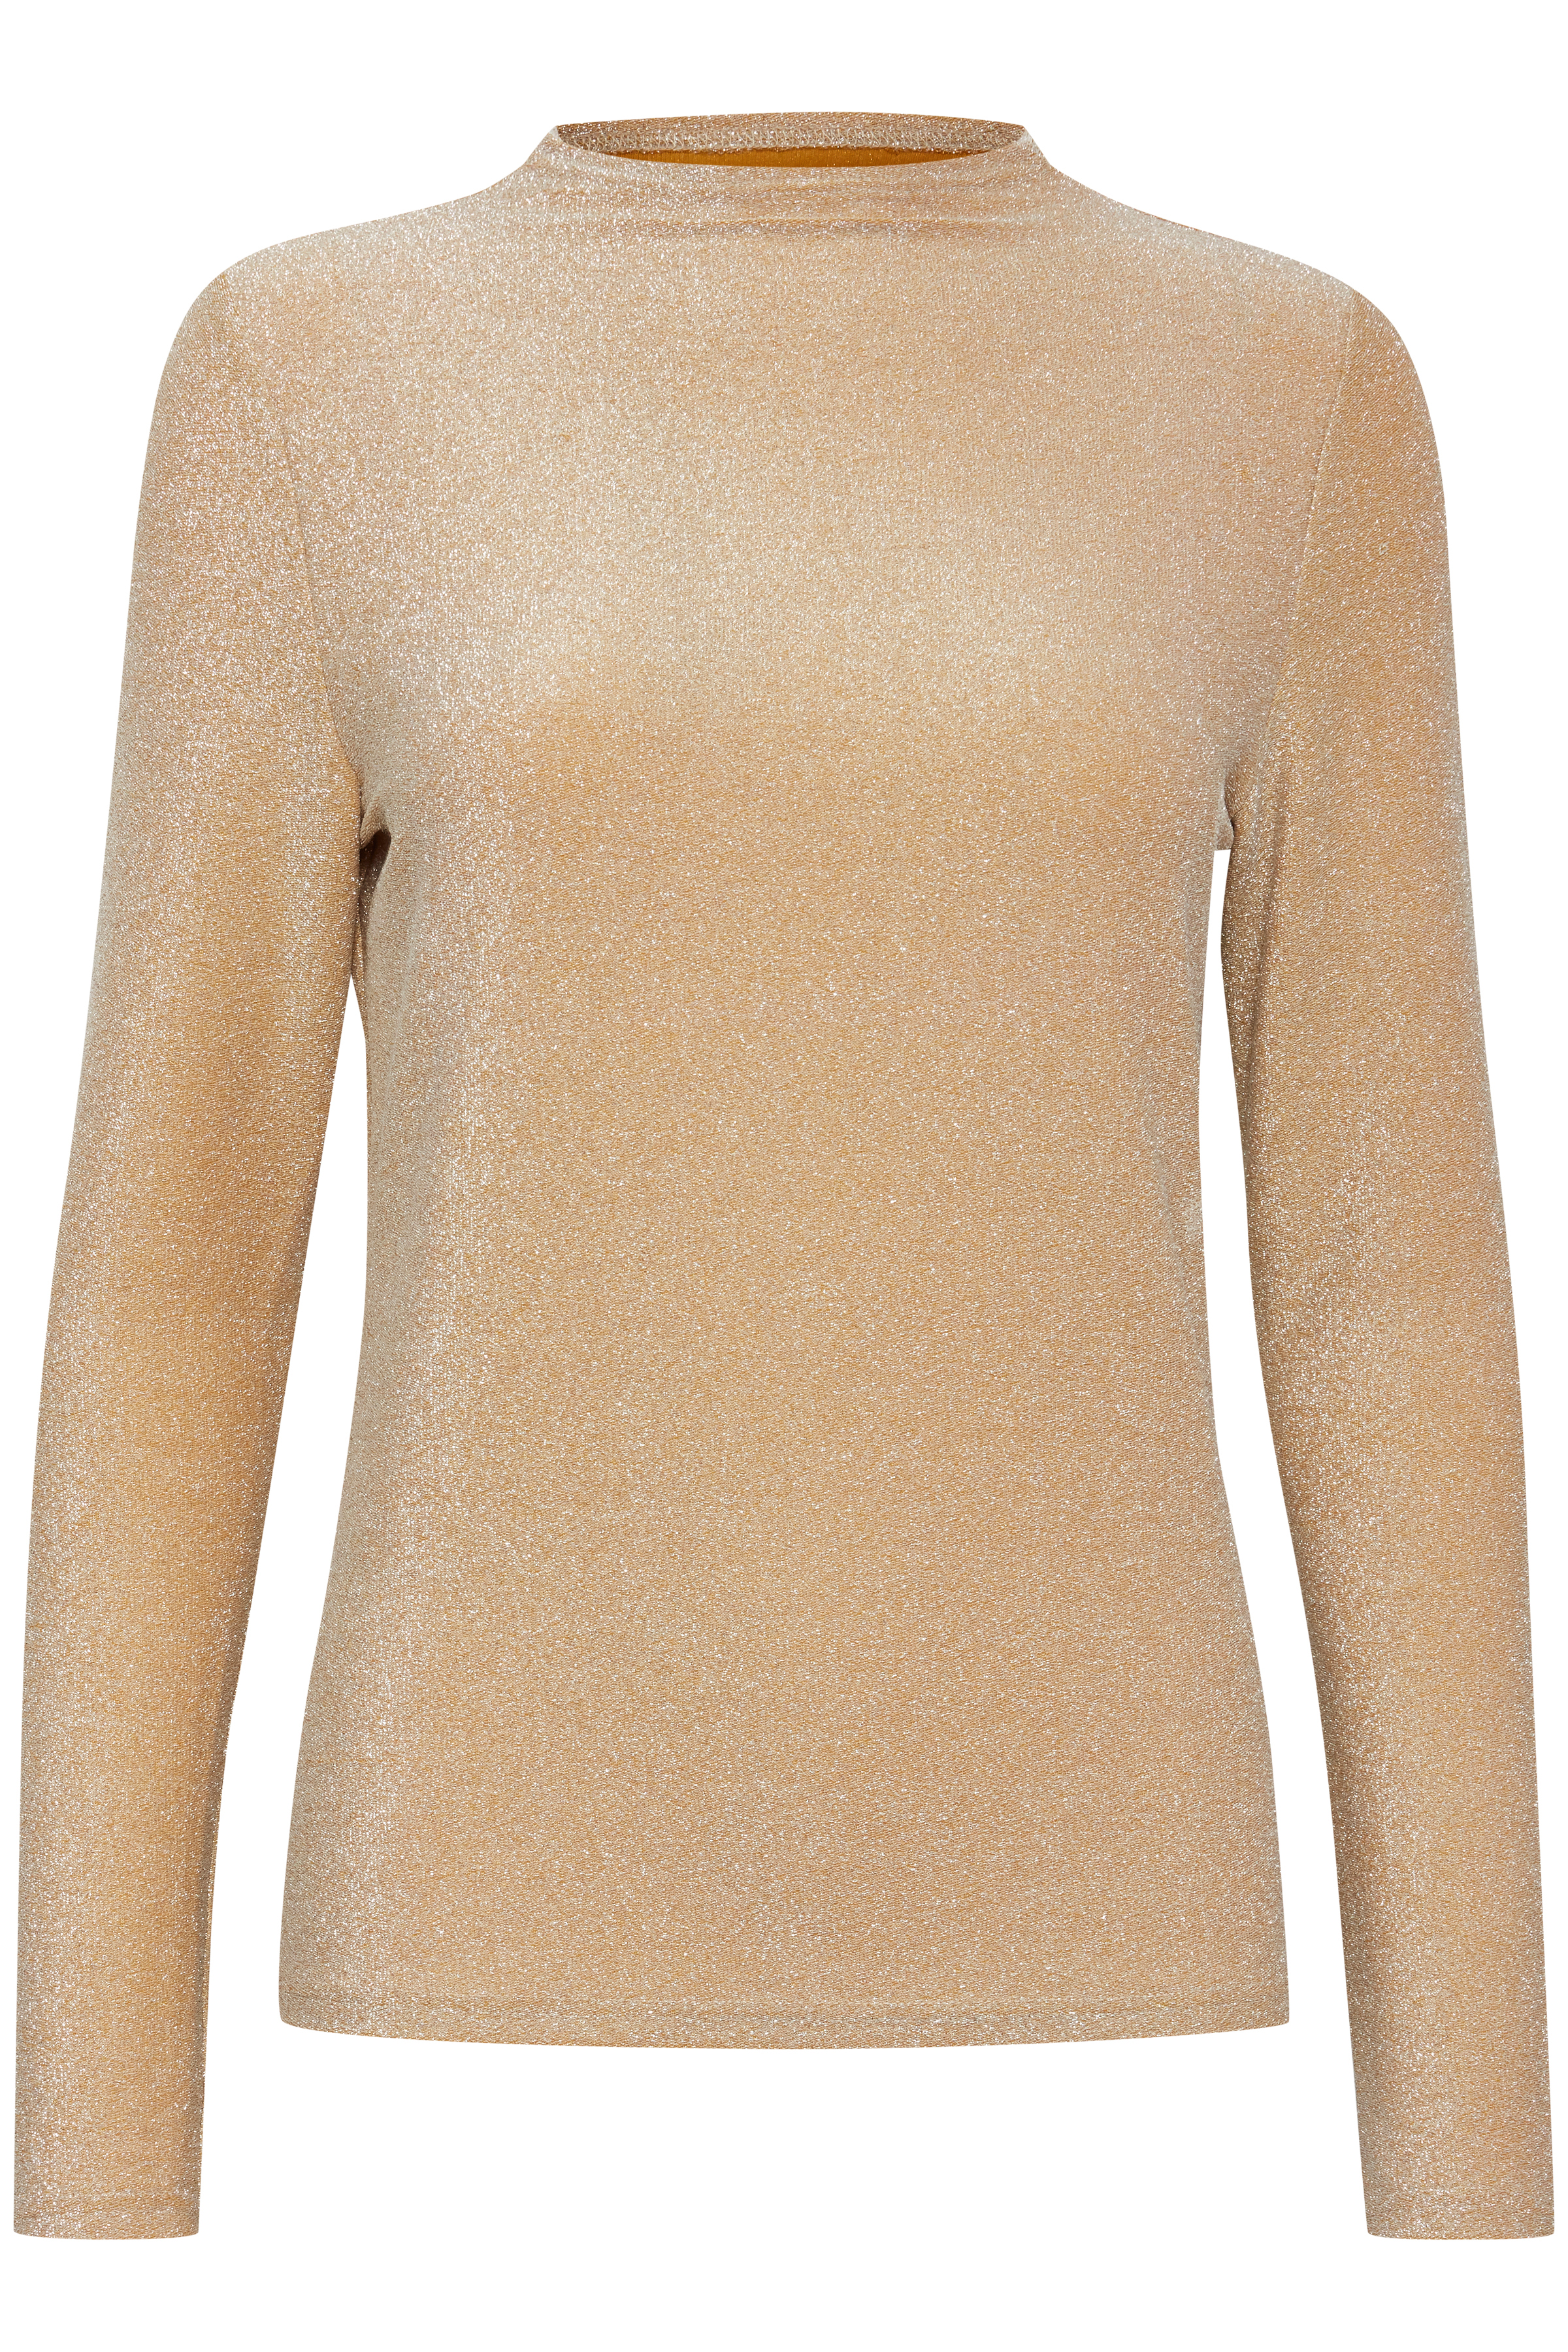 Gold T-shirt from b.young – Buy Gold T-shirt from size XS-XL here